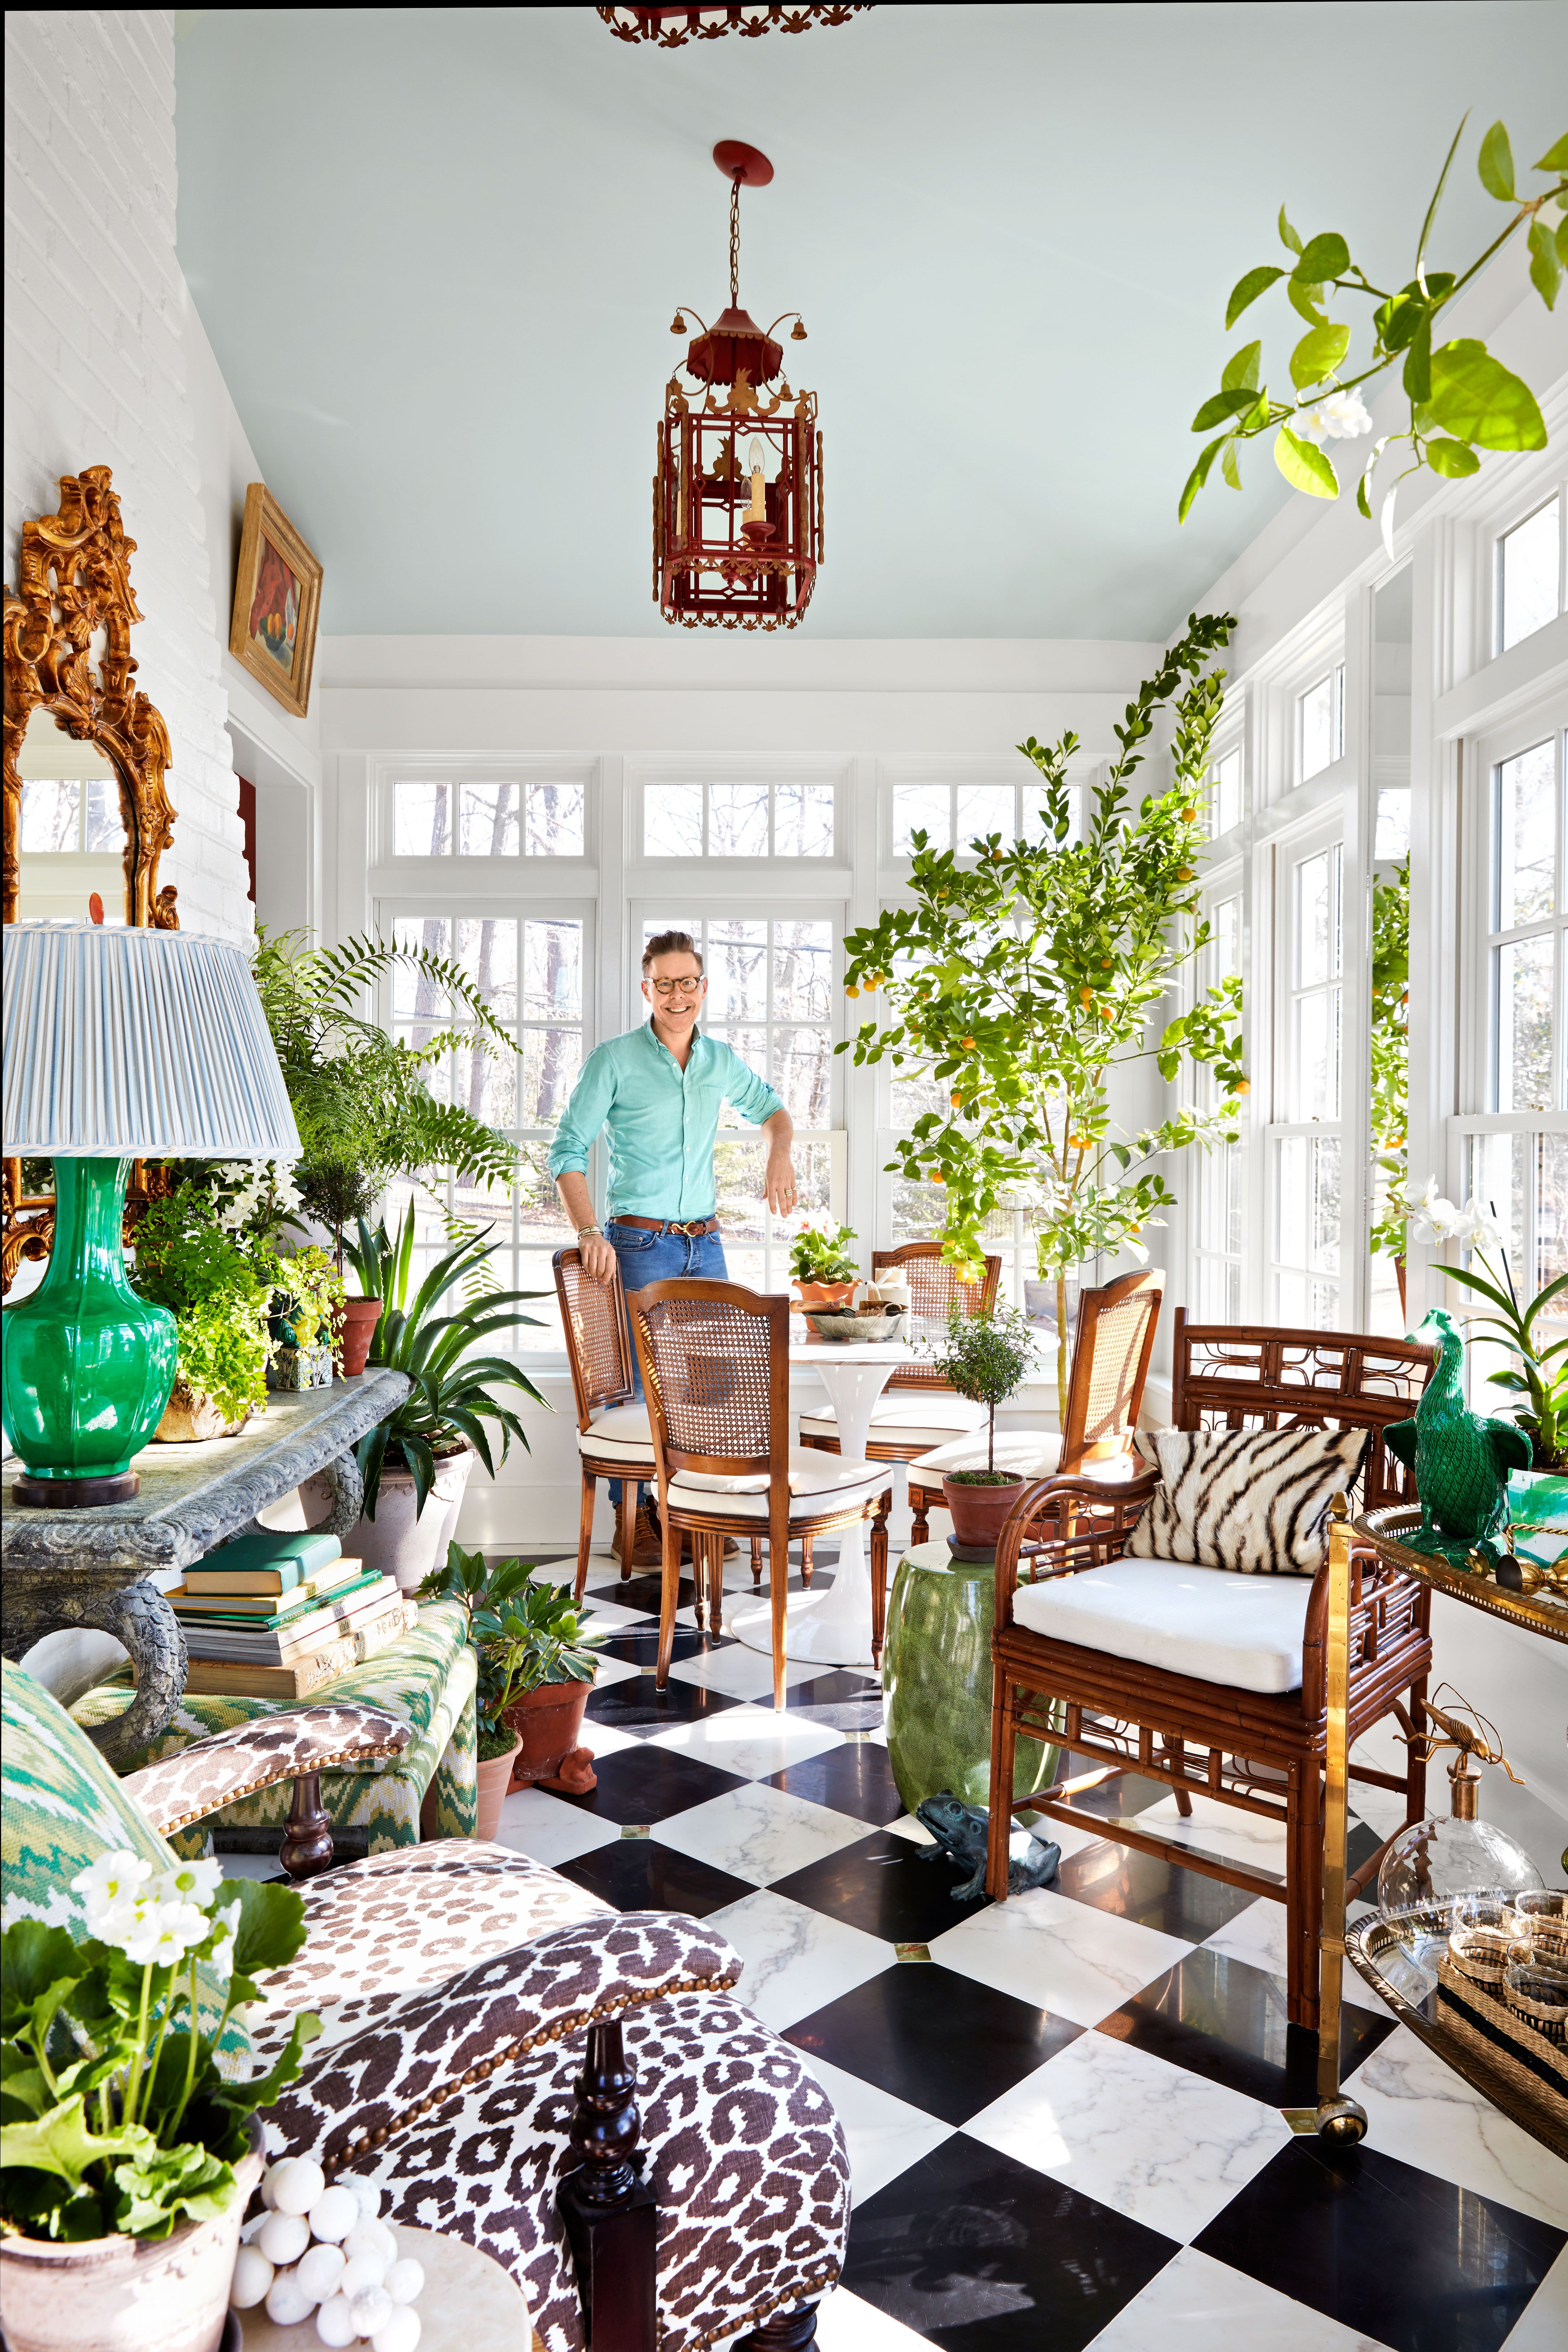 This Garden Room Was Once An Old Screened In Porch Indoor Gardening Decor Ideas